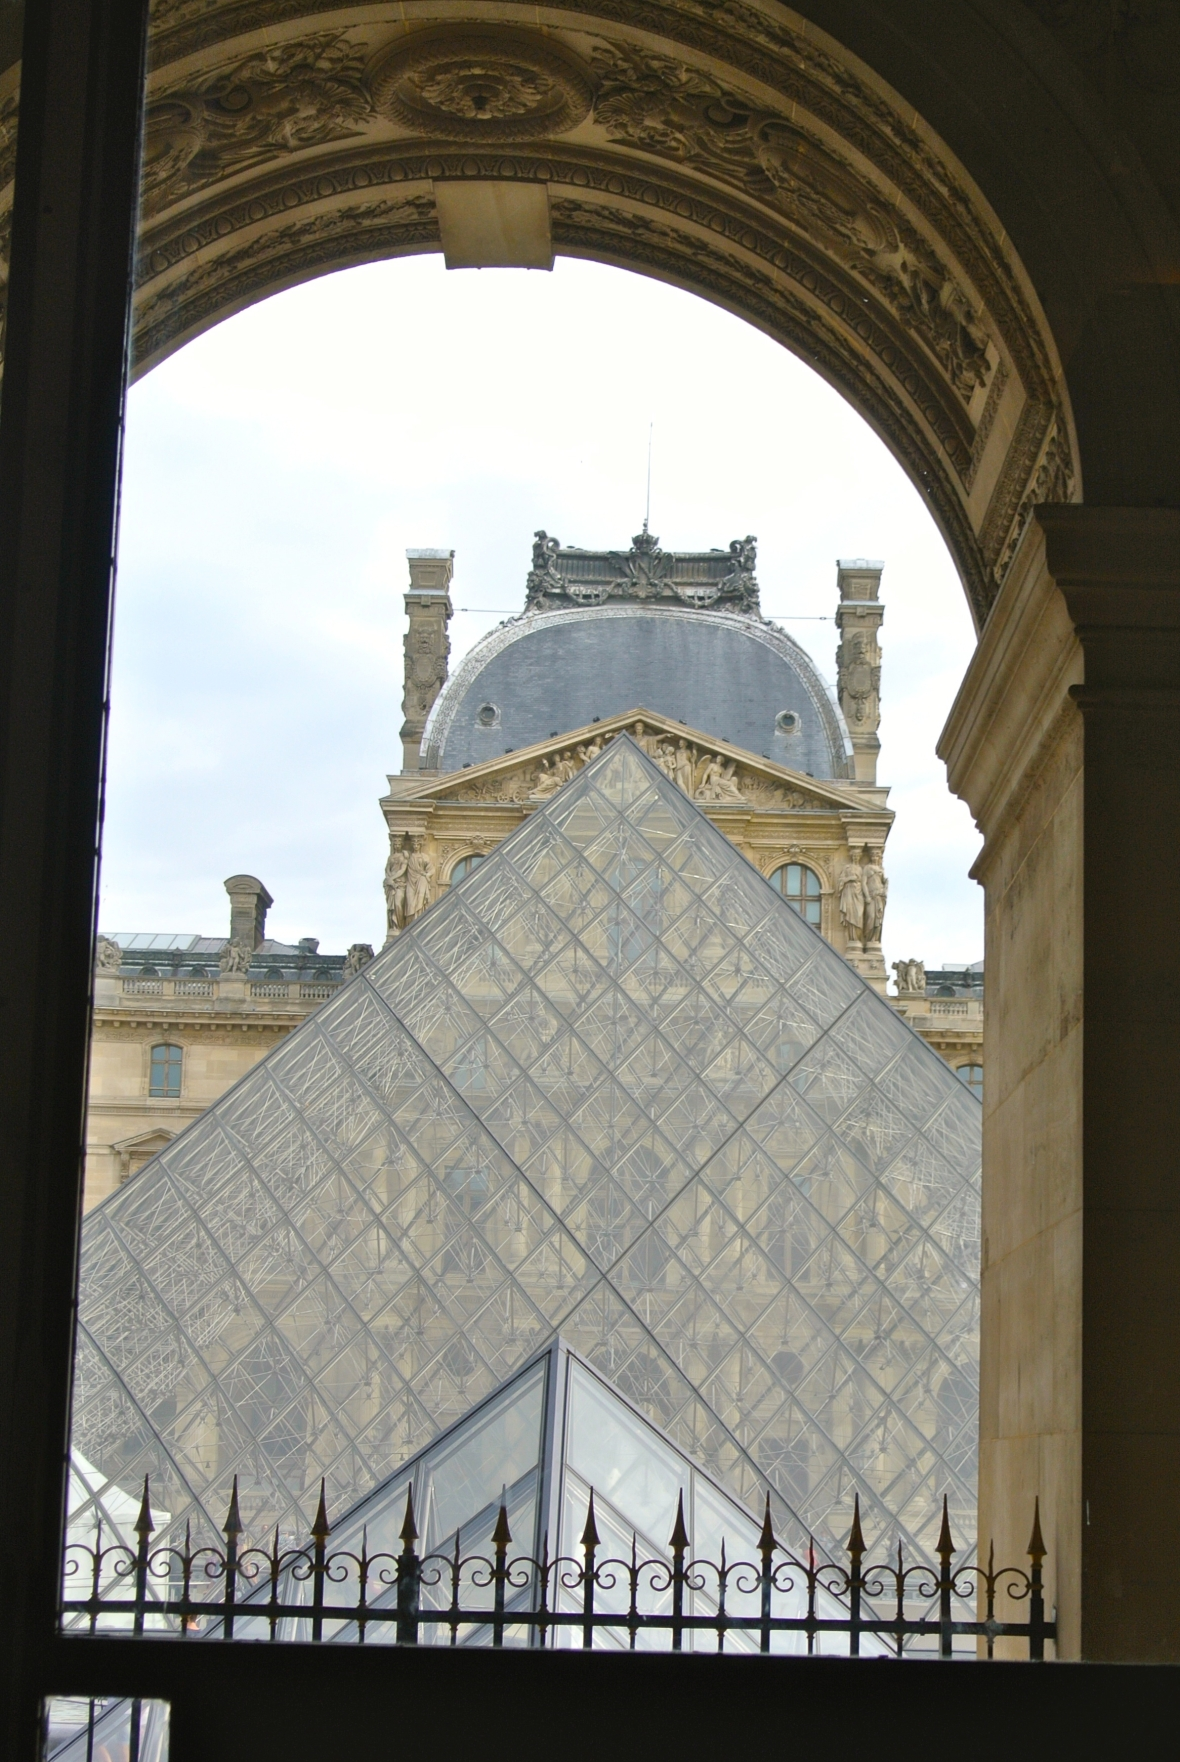 The Louvre - Paris France